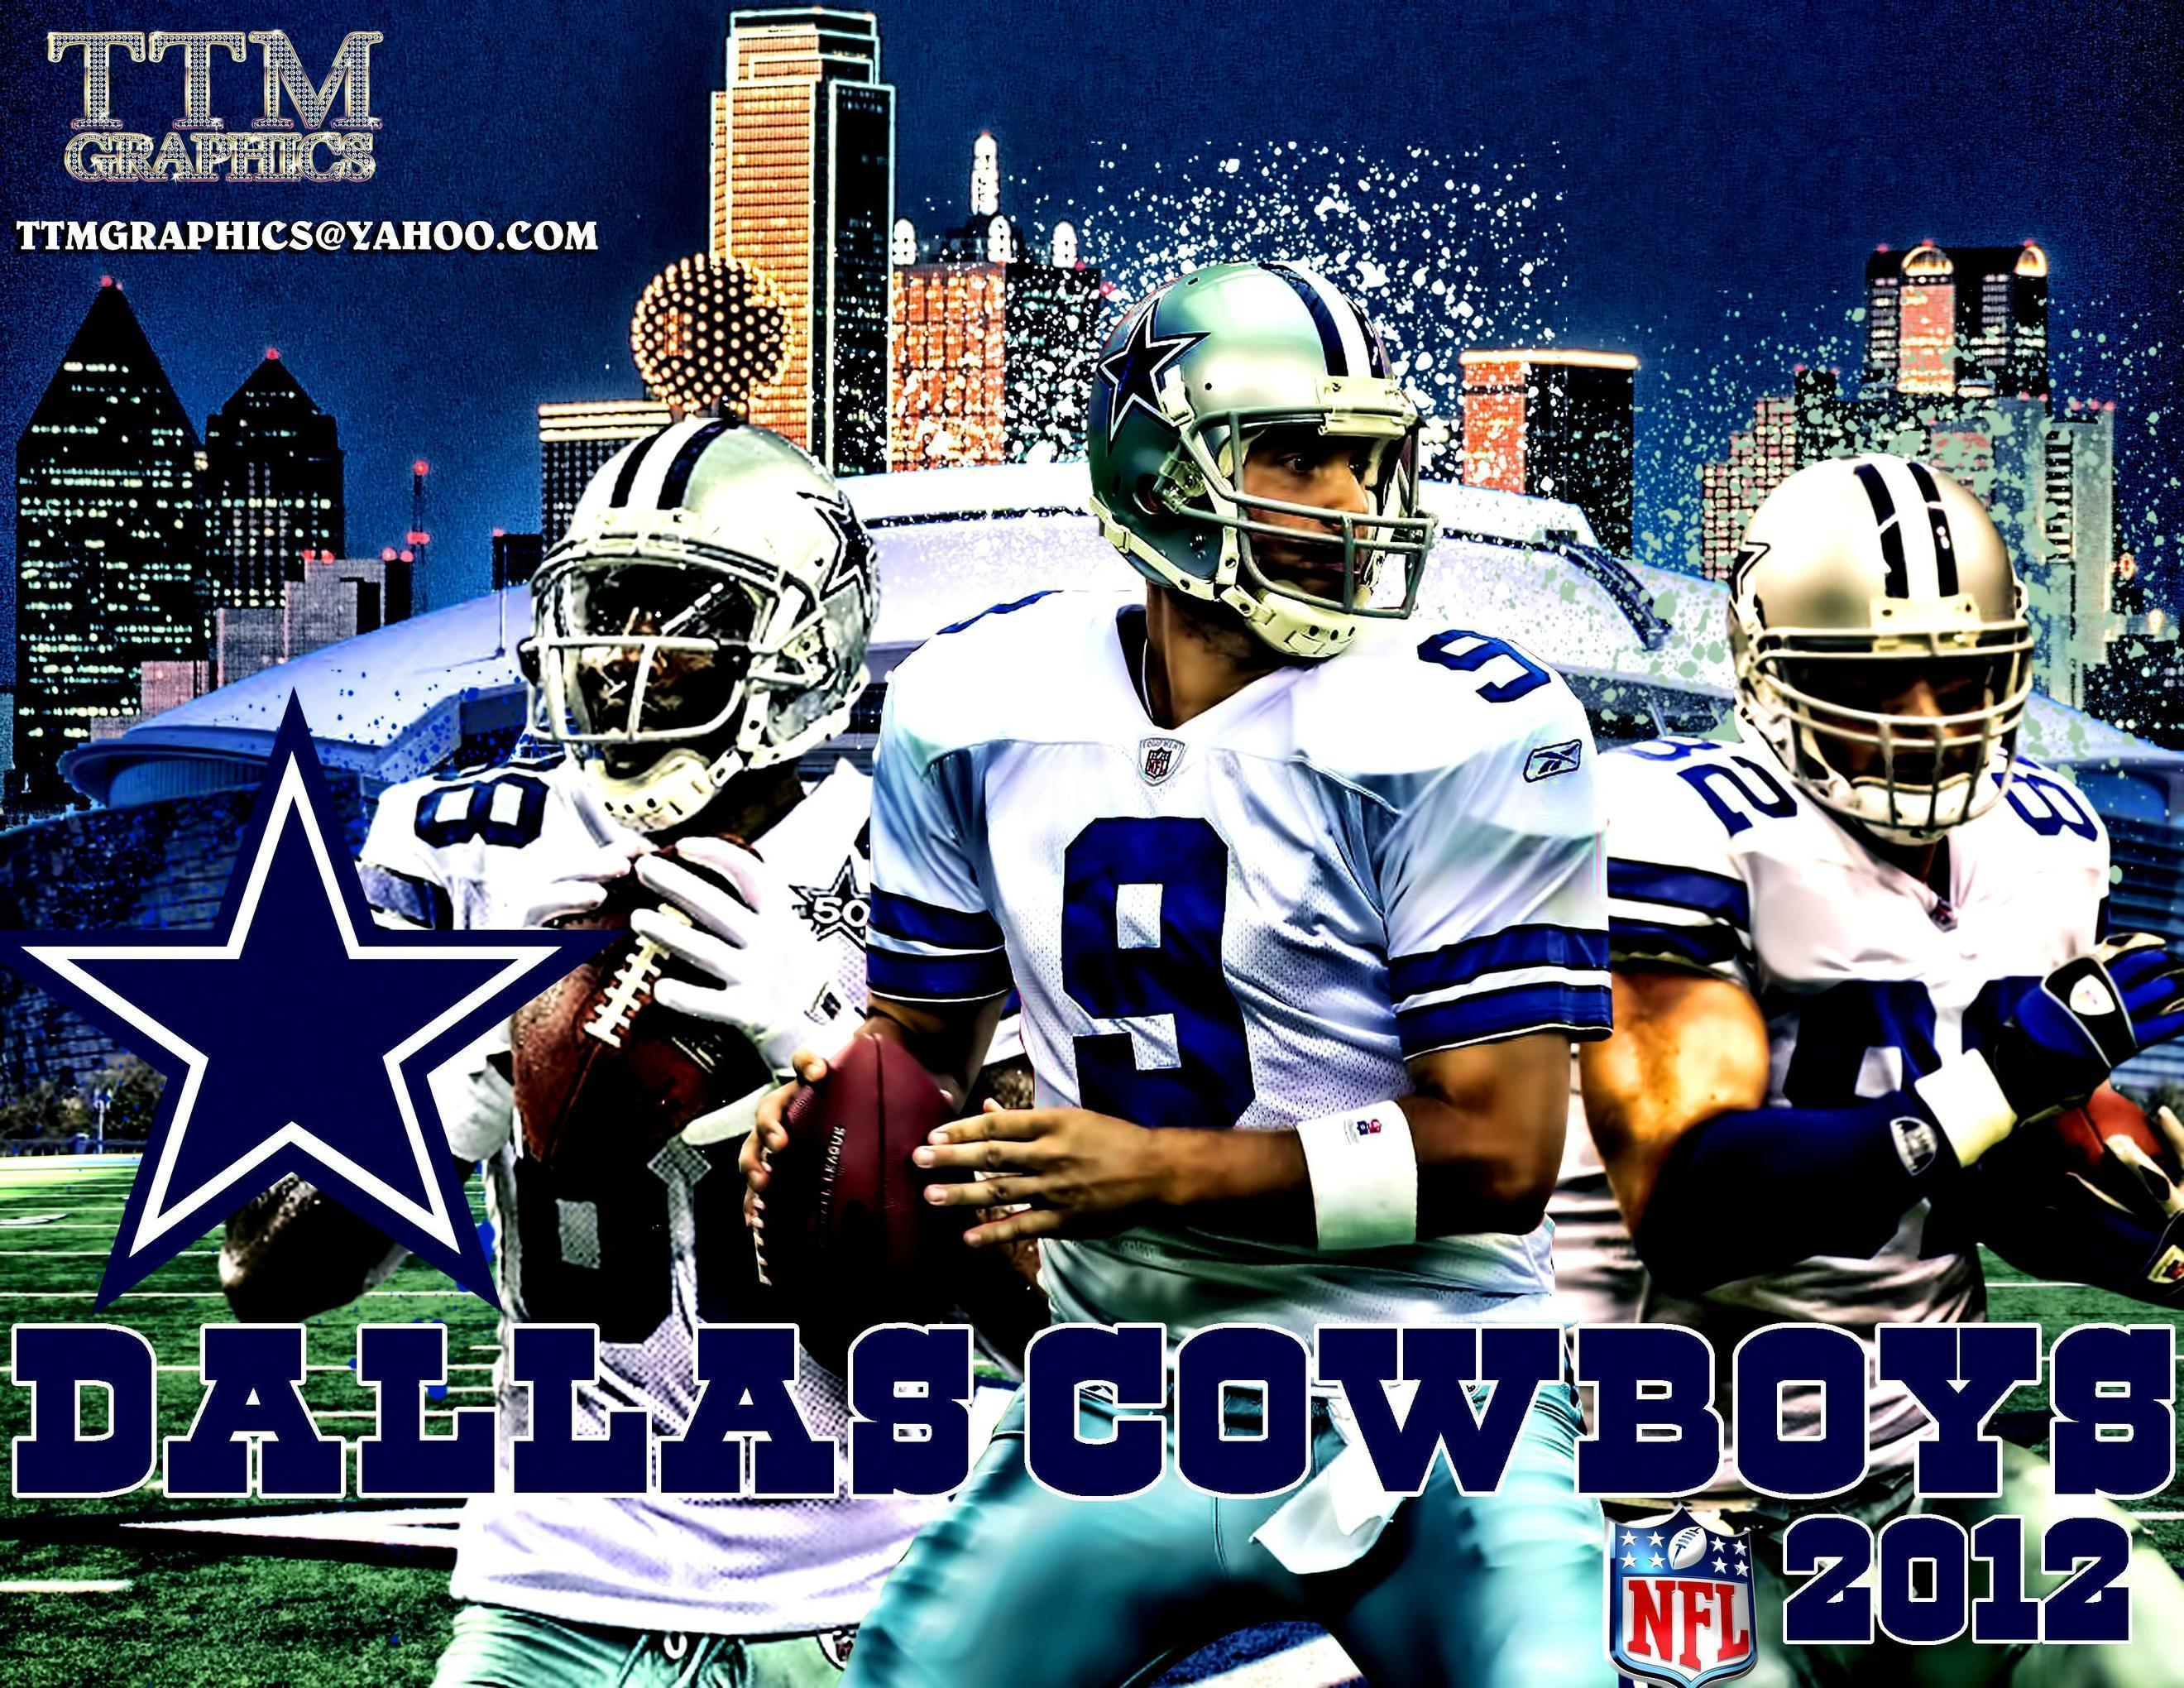 Simple Wallpaper Football Cowboys - 4Tzp2tq  You Should Have_29049 .jpg